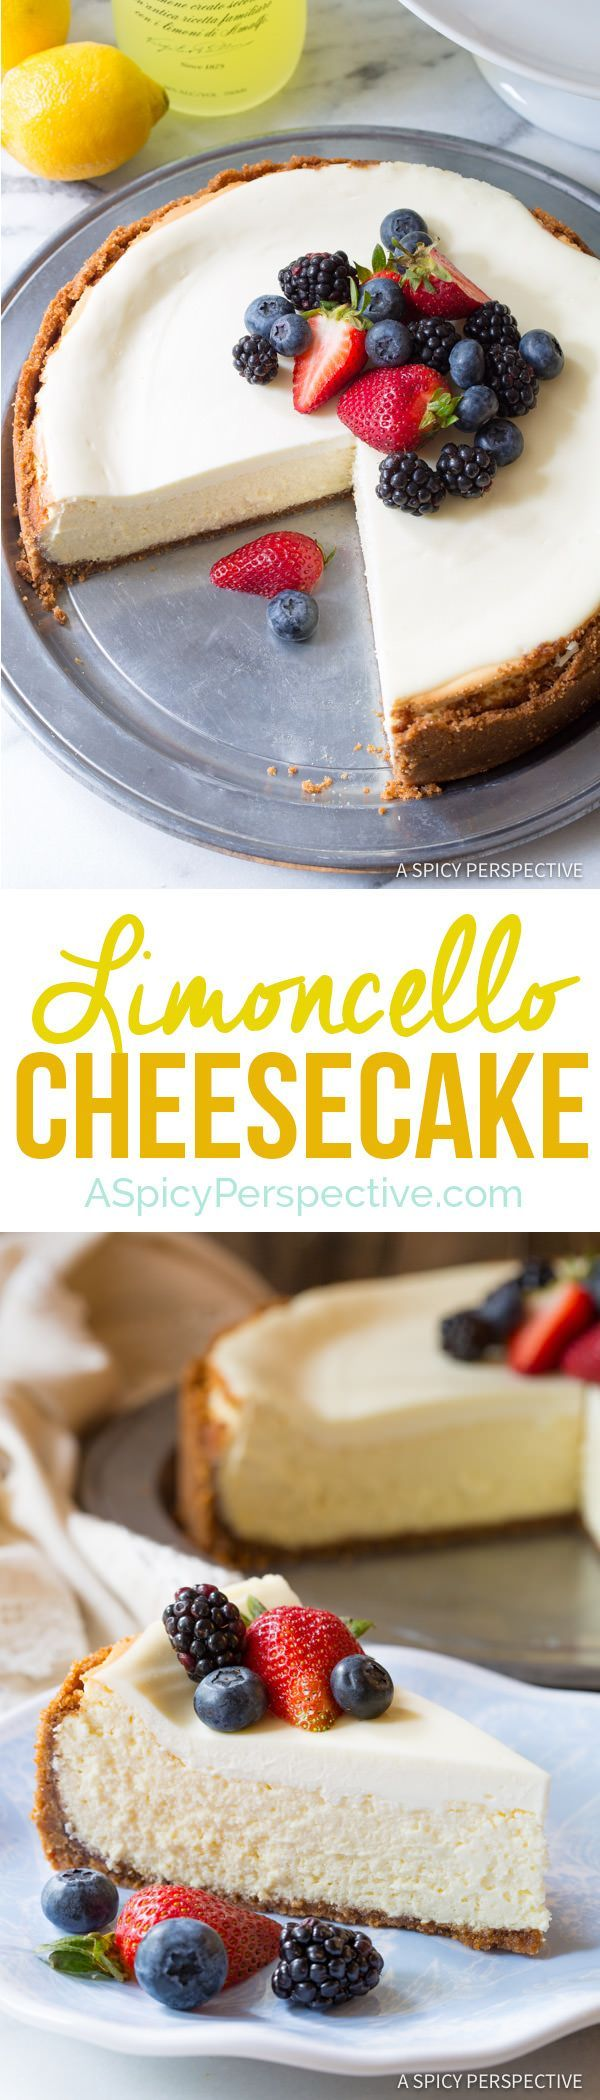 Silky Limoncello Cheesecake with Biscoff Crust | ASpicyPerspective...